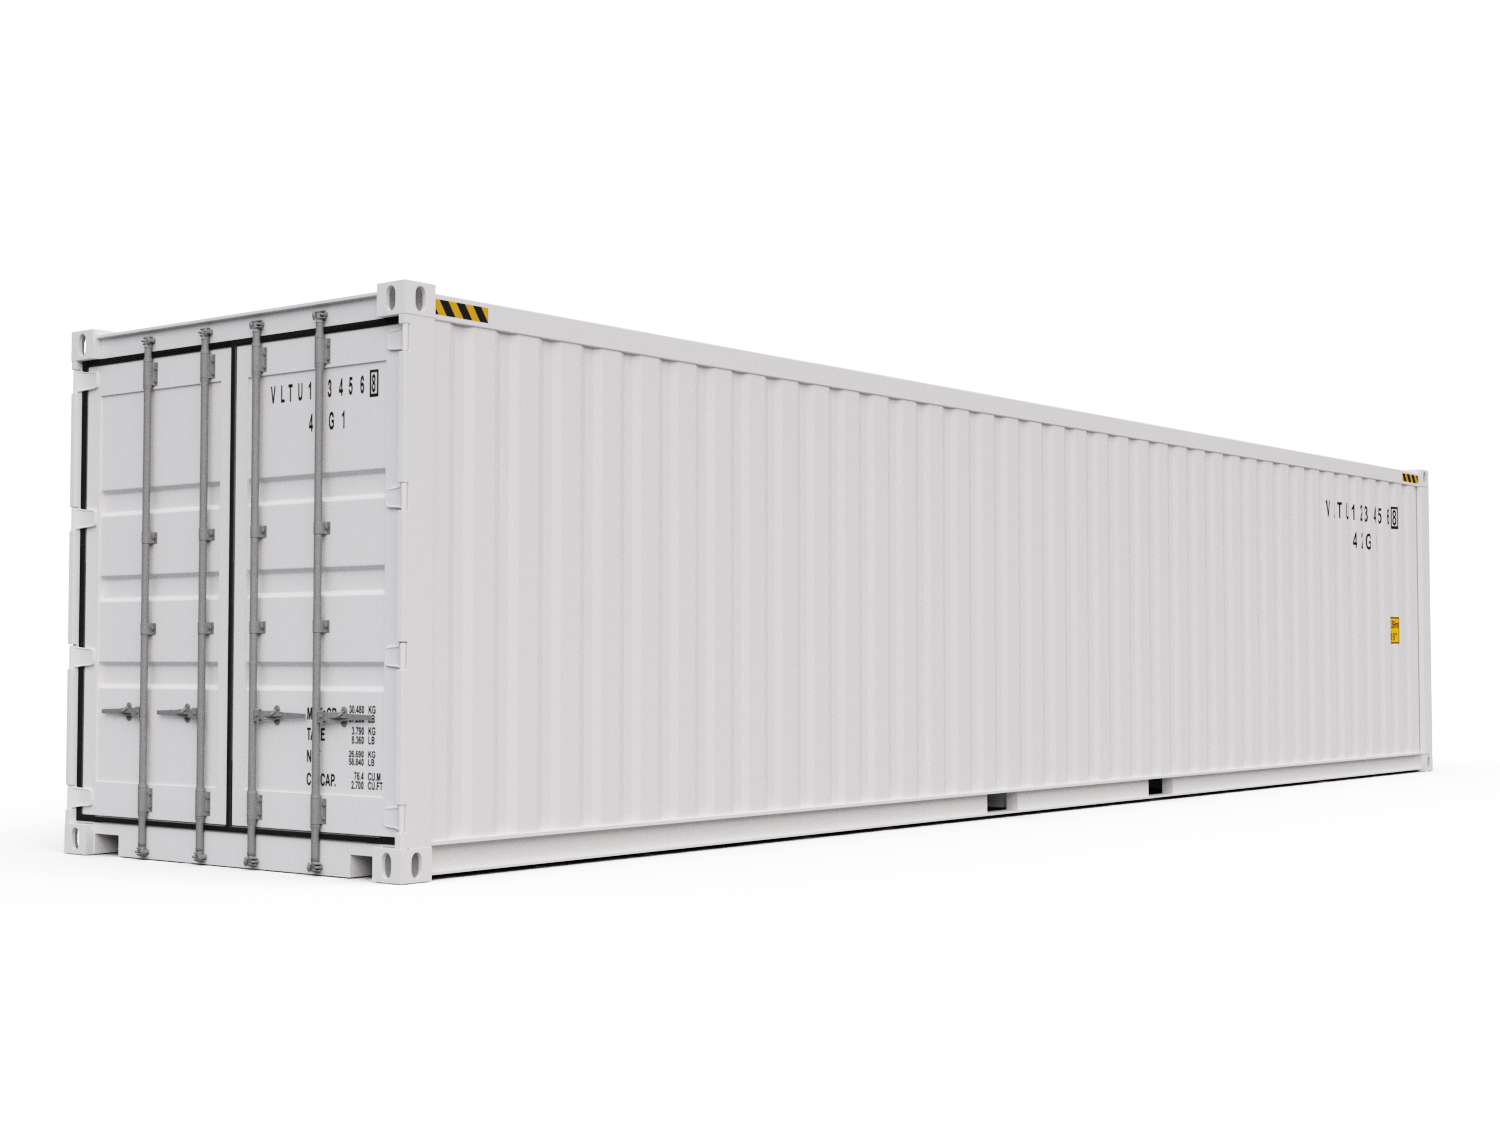 Shipping Containers For Sale in Houston